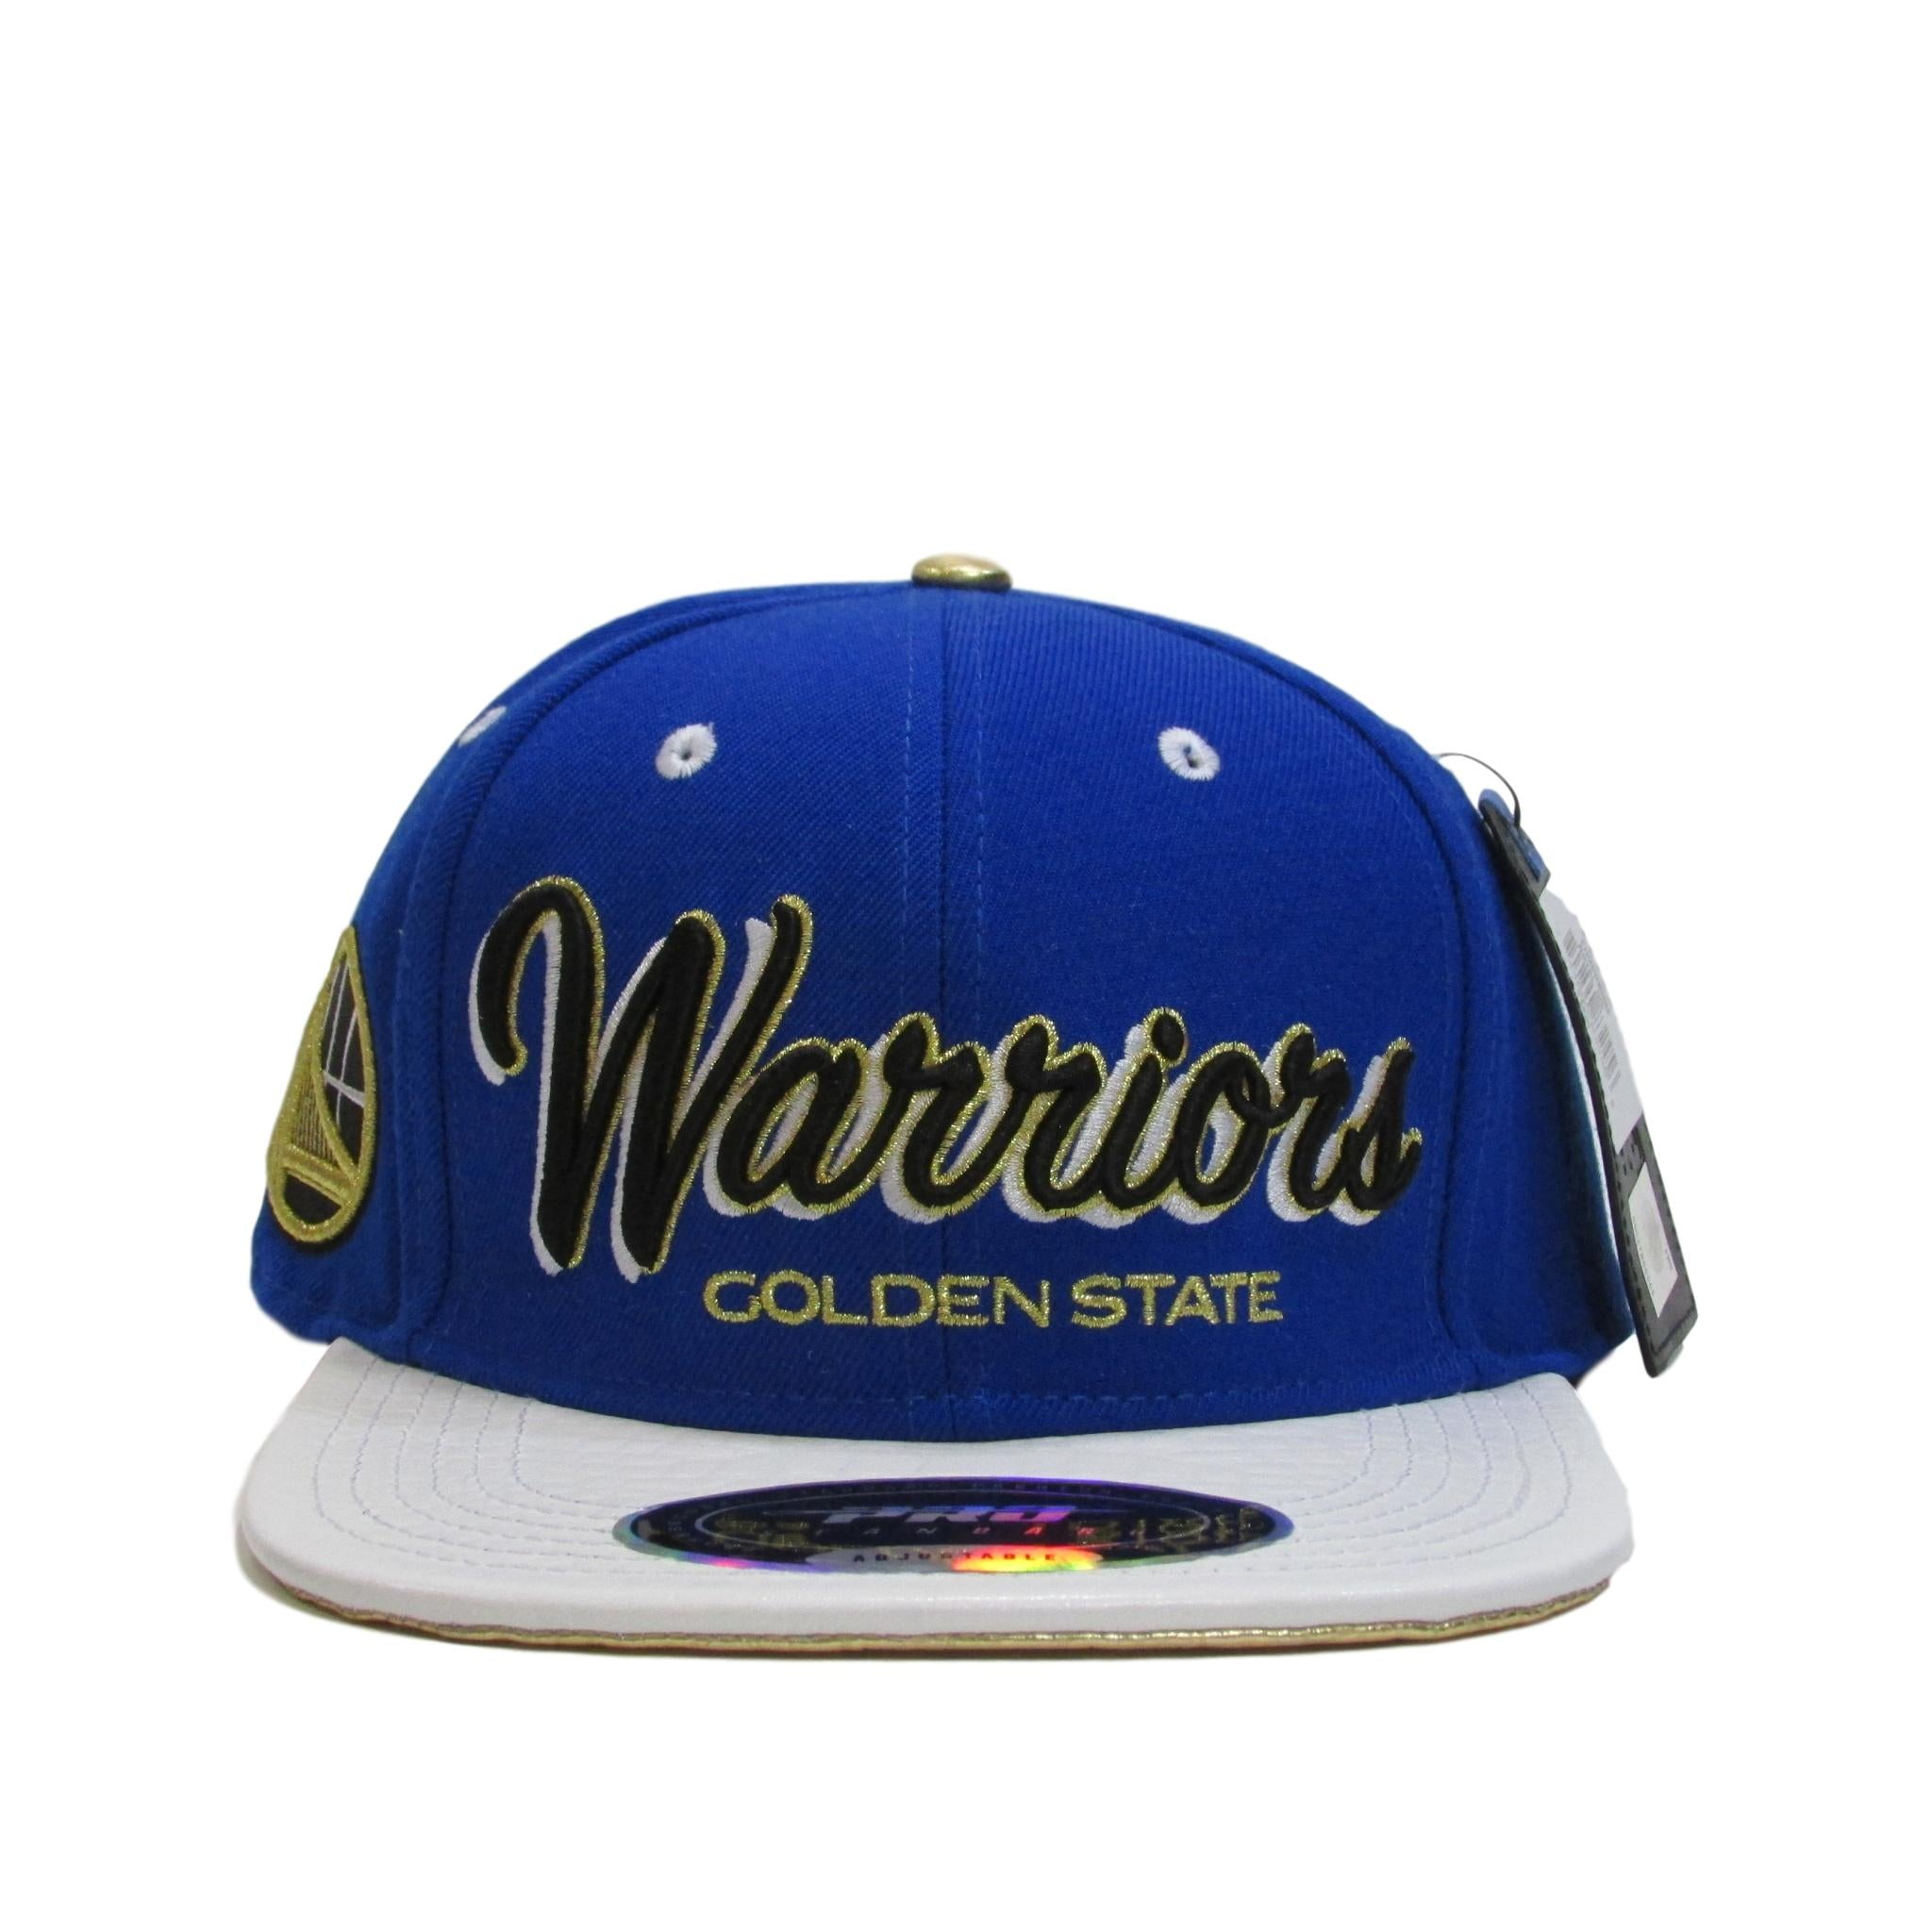 Golden State Warriors White Leather Strapback Hat Pro Standard